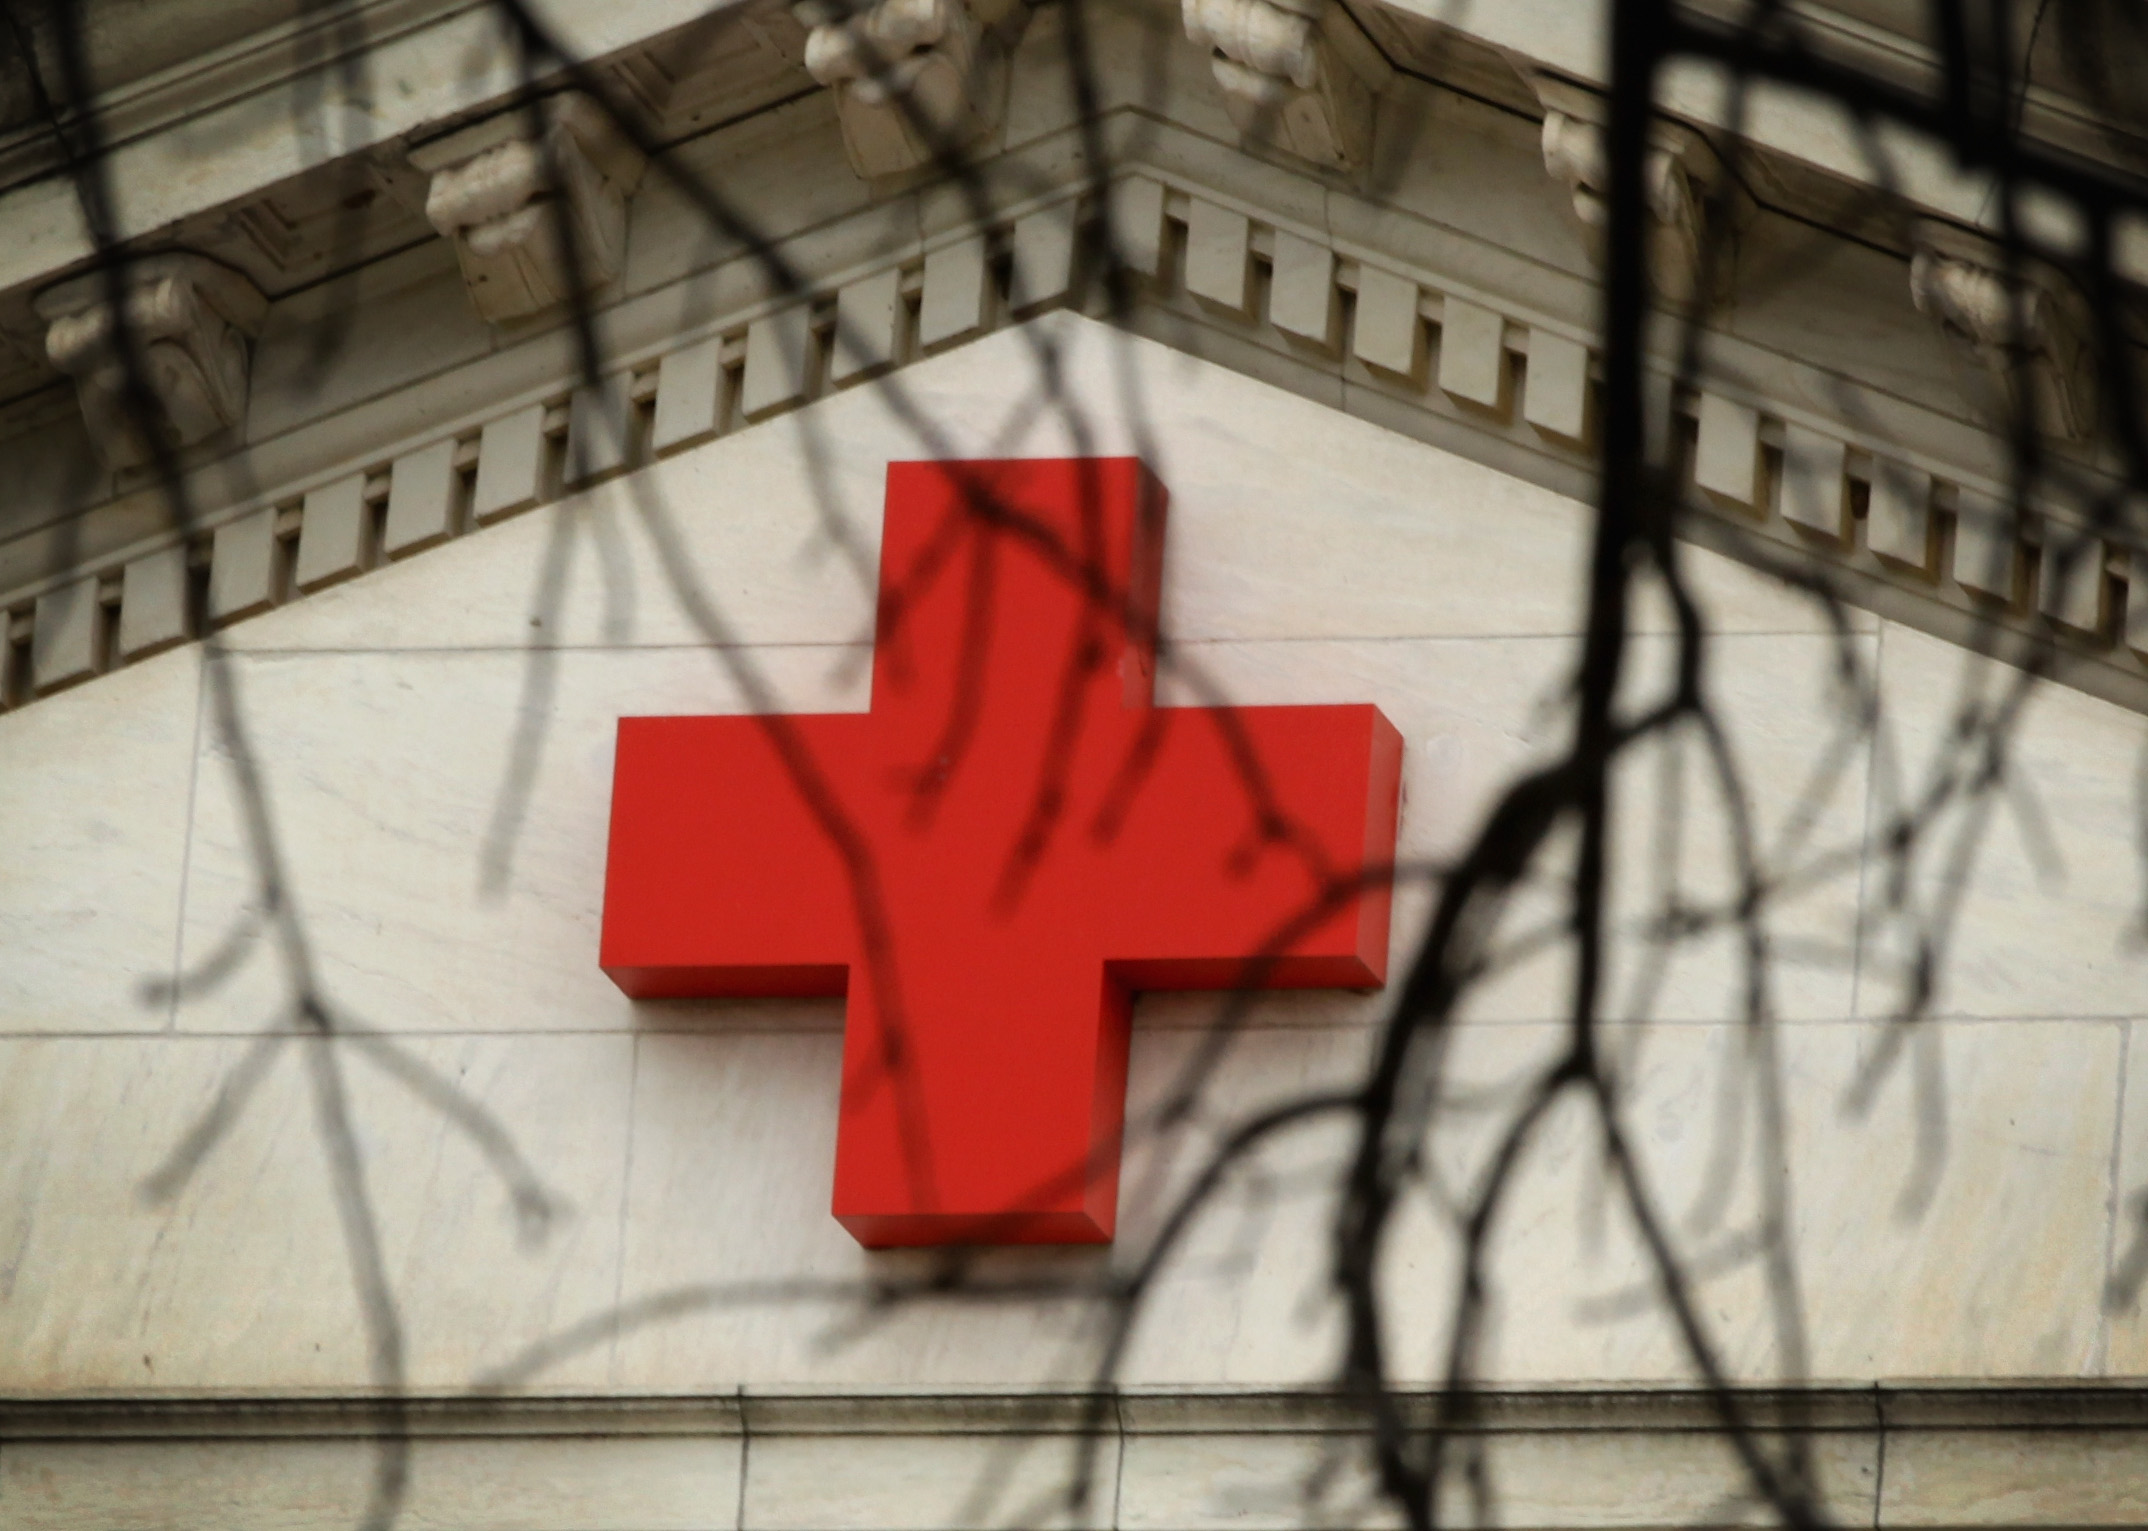 American Red Cross Under Scrutiny After Investigation Journalism Story Exposes Gross Mismanagement